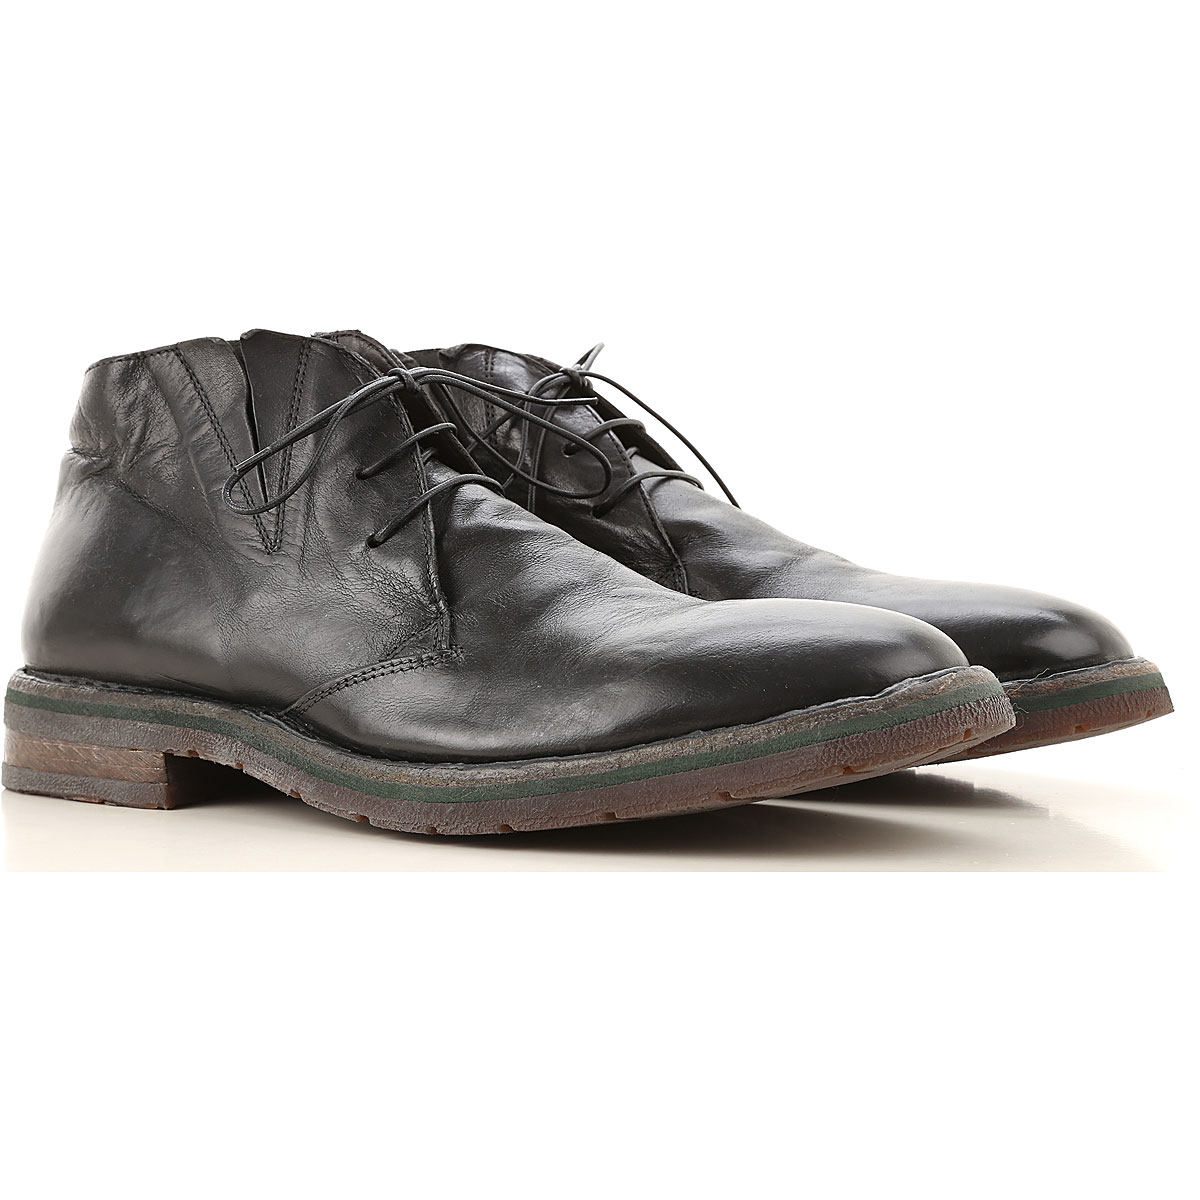 Moma Lace Up Shoes for Men Oxfords, Derbies and Brogues On Sale, Black, Leather, 2019, 10.5 8 9